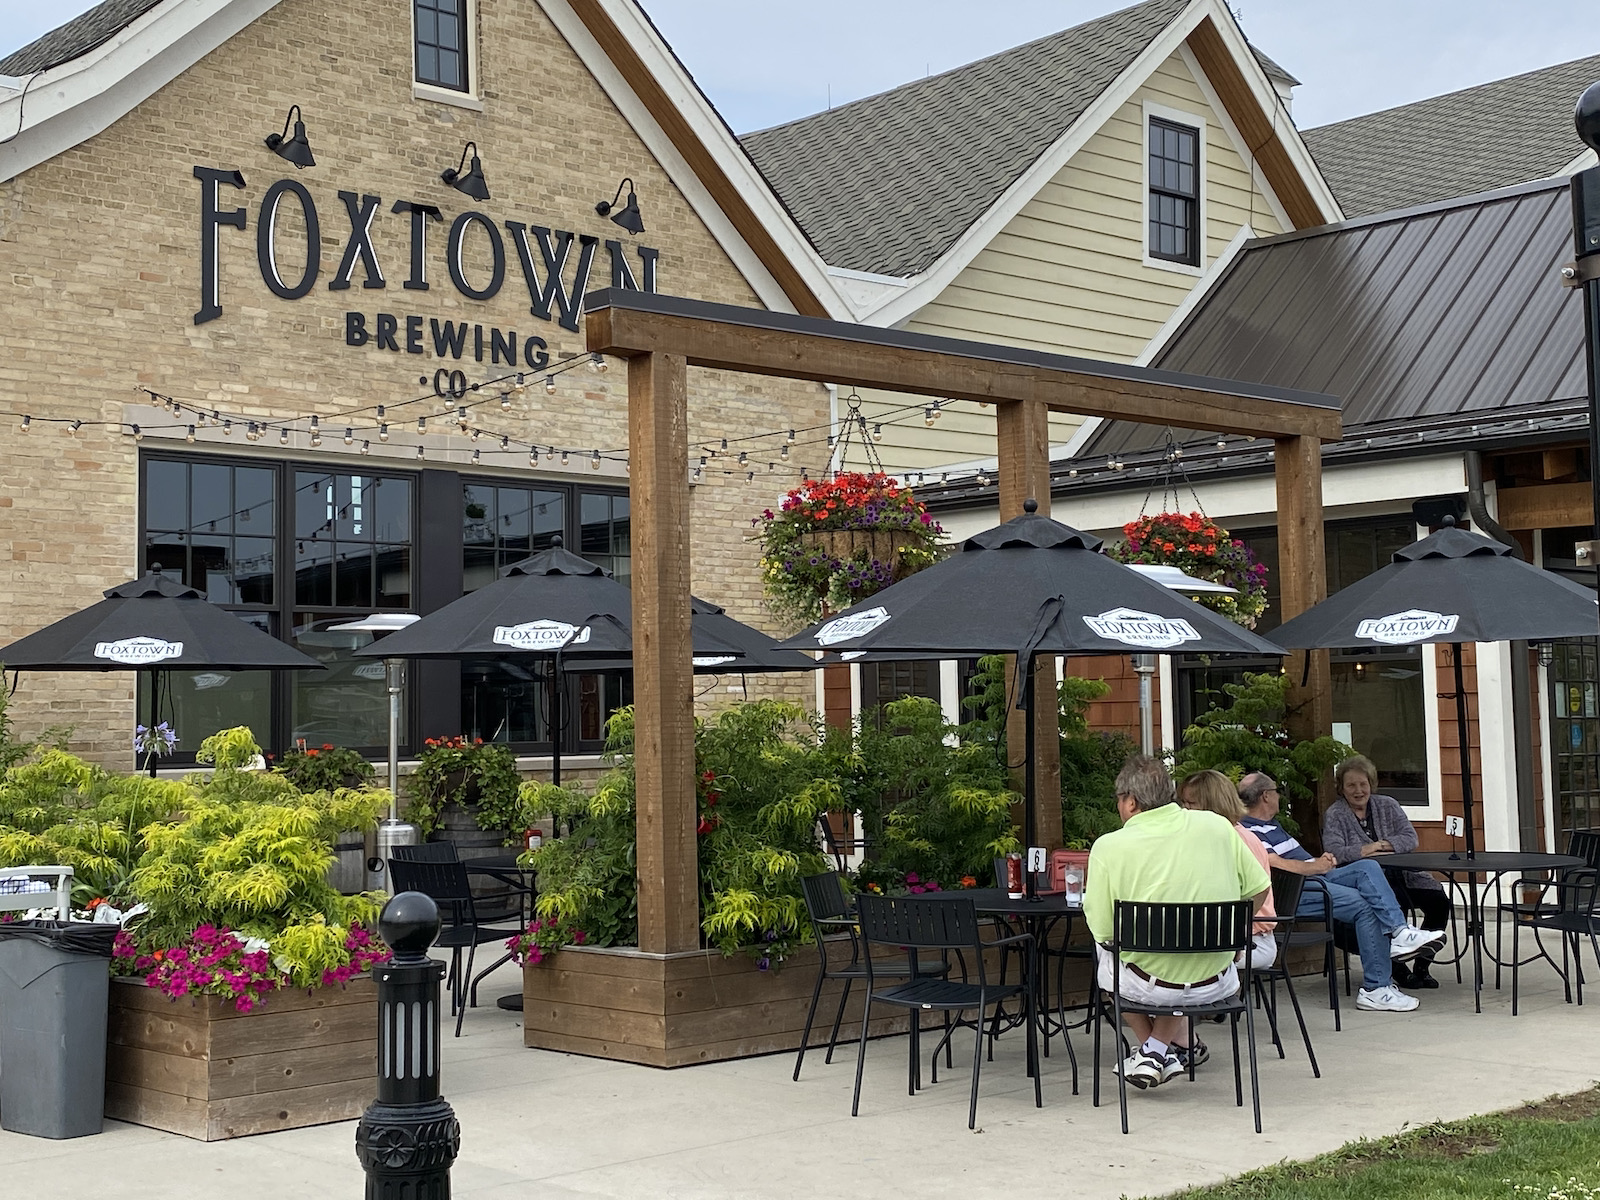 Foxtown Brewing - exterior and patio